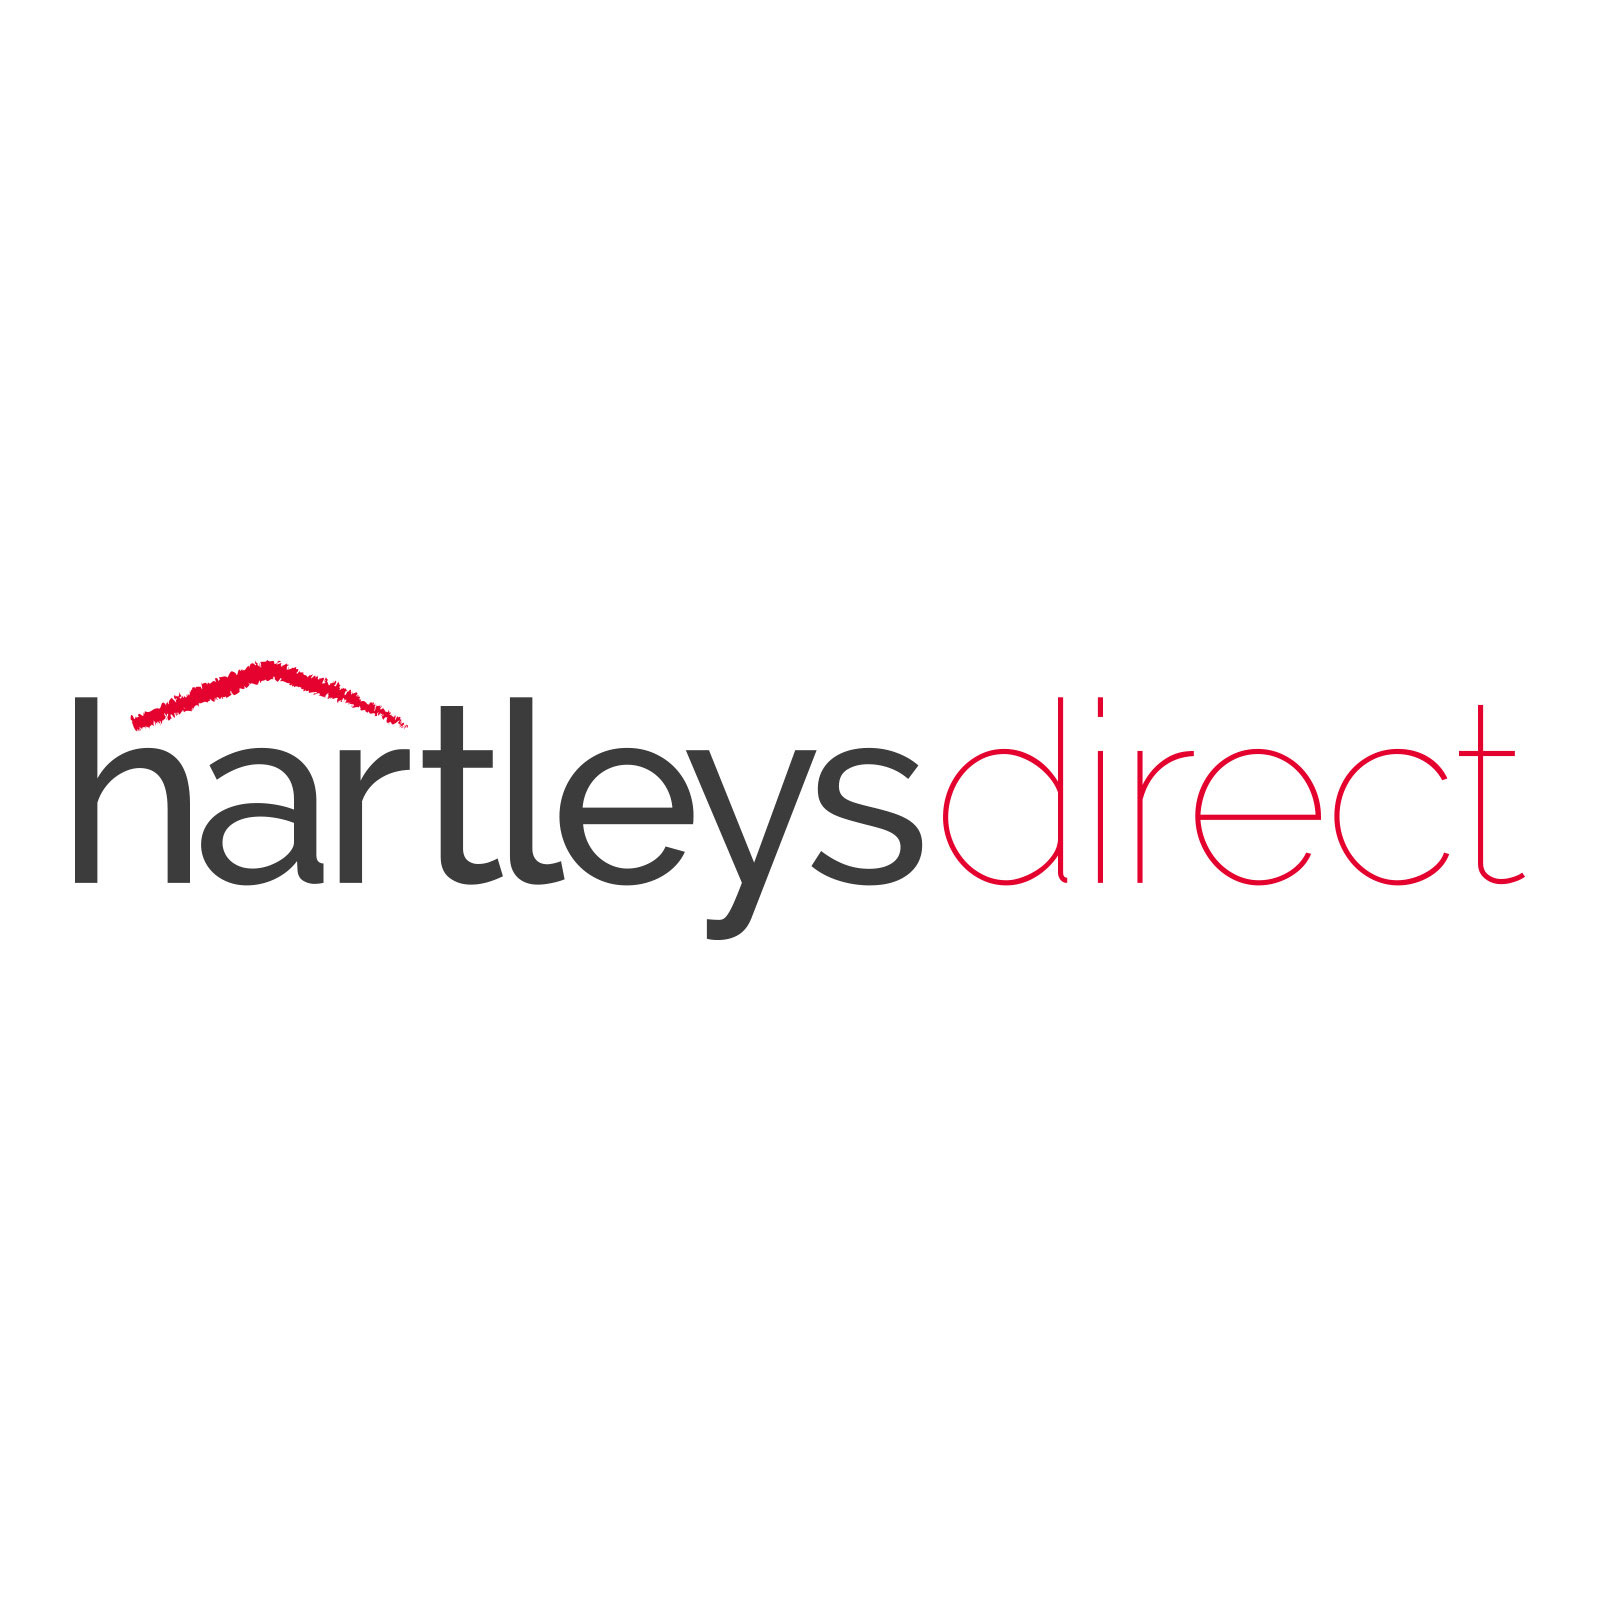 Hartleys-15mm-White-4-Cube-Unit-and-2-White-Easy-Grasp-Box-Drawers.jpg